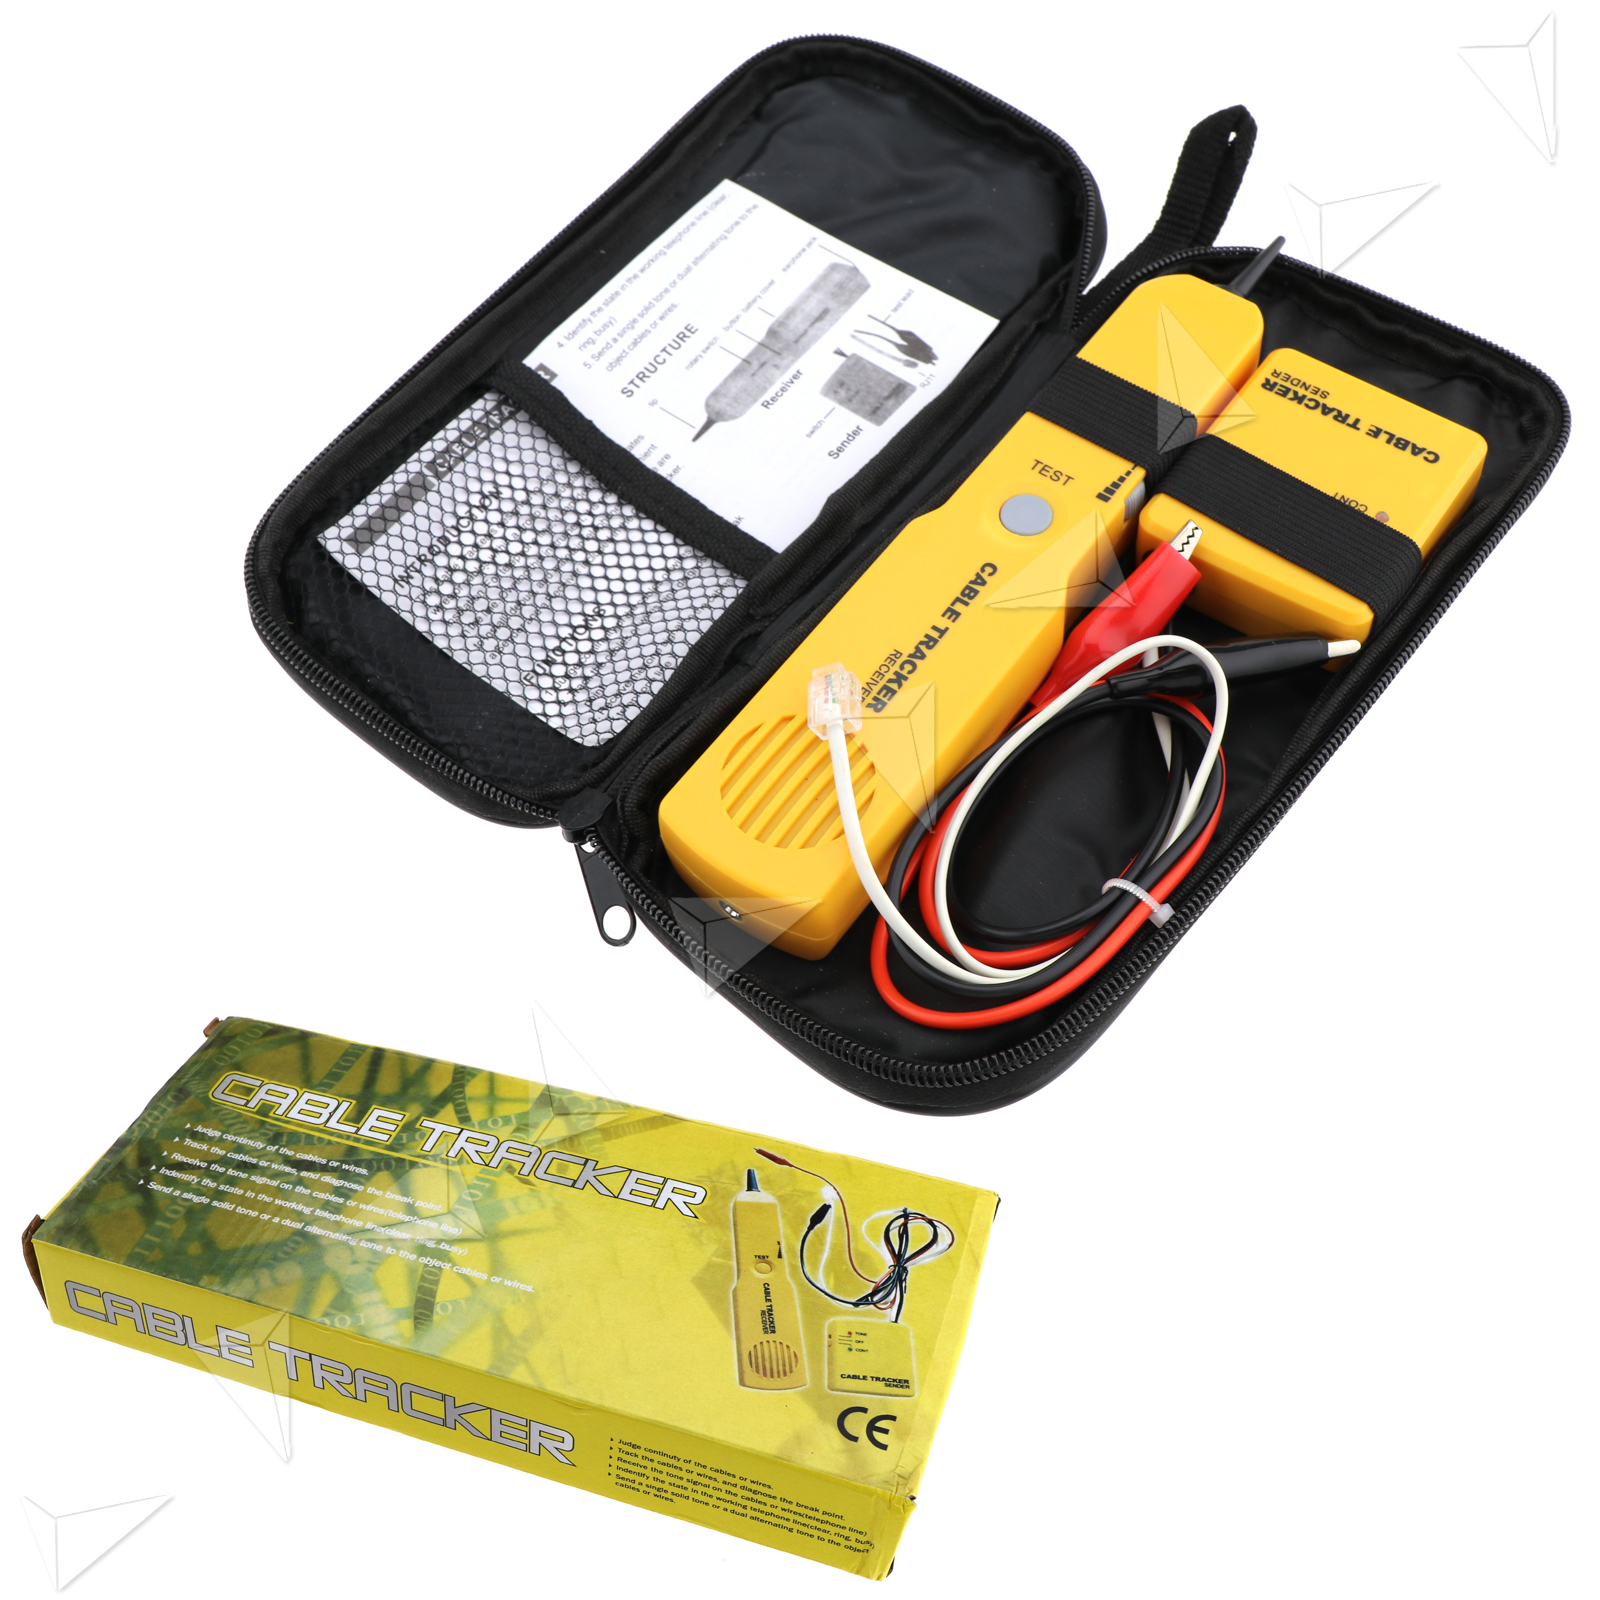 Telephone Network Tone Wire Cabletester Tracker Automotive Short Circuit Open Detector Tracersender For Rj11 Line Finder Cable Tester Toner